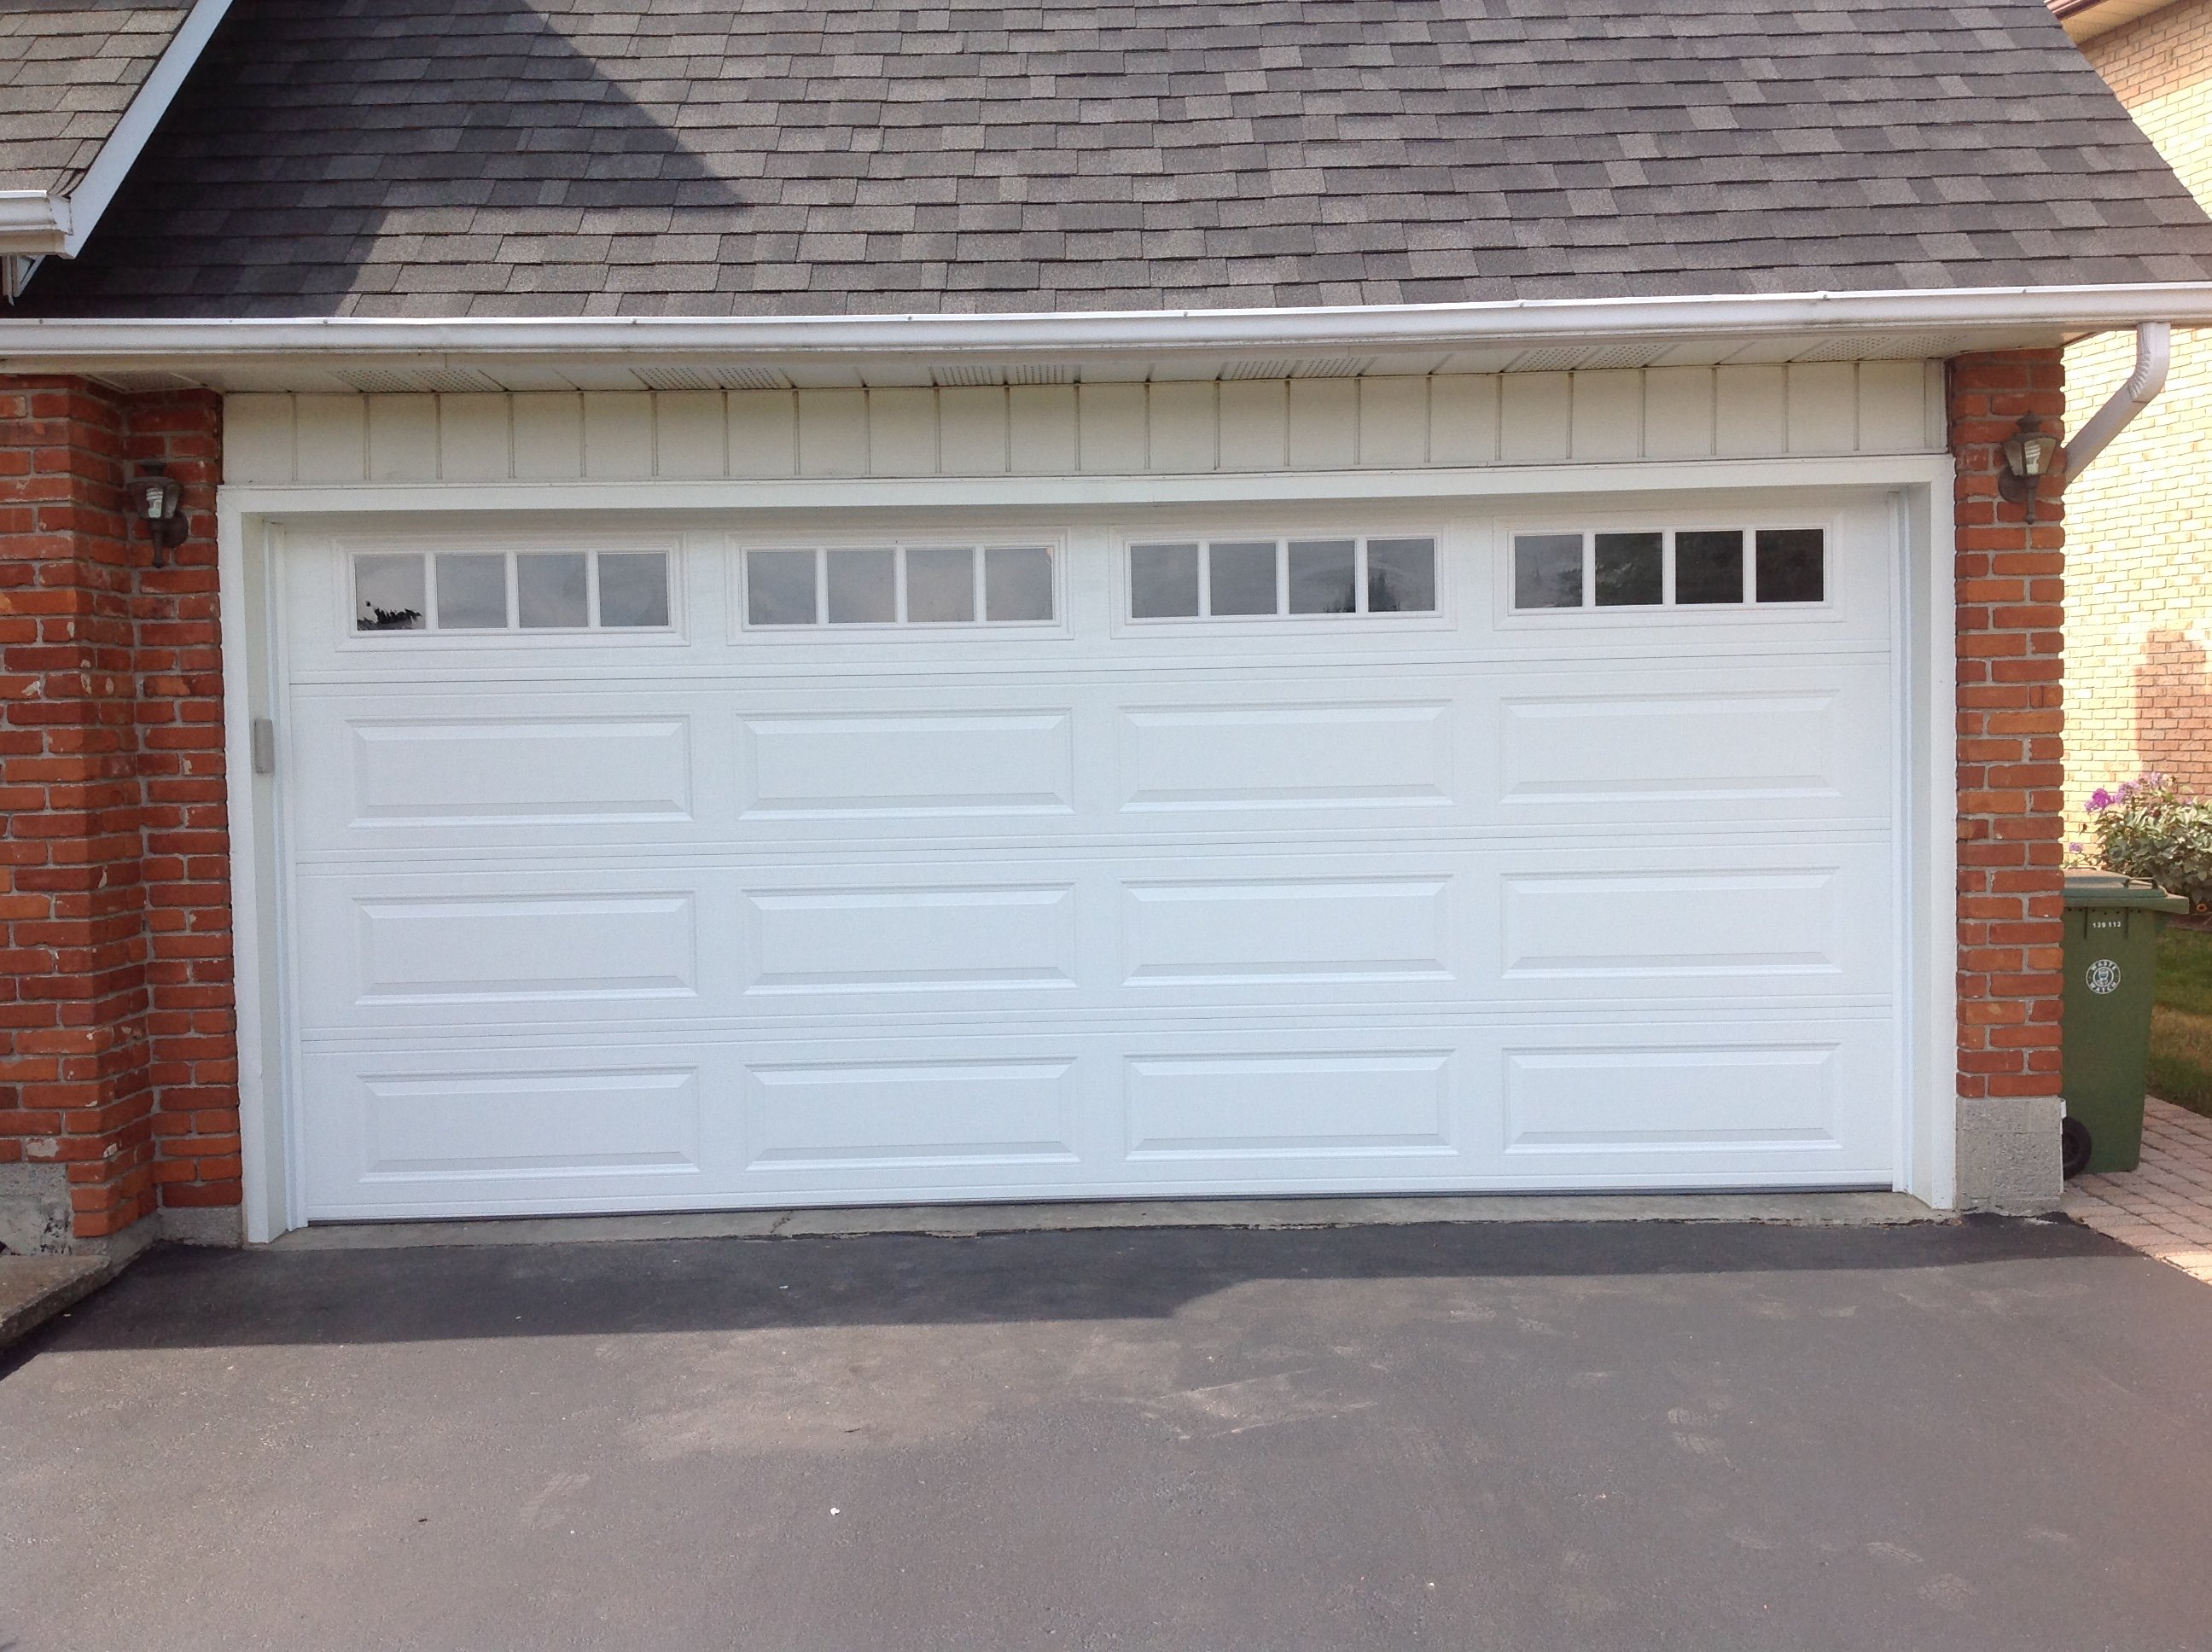 1936 #6D3E32 Residential Garage Doors Hamilton Door Systems save image Garage Doors Systems 35872592